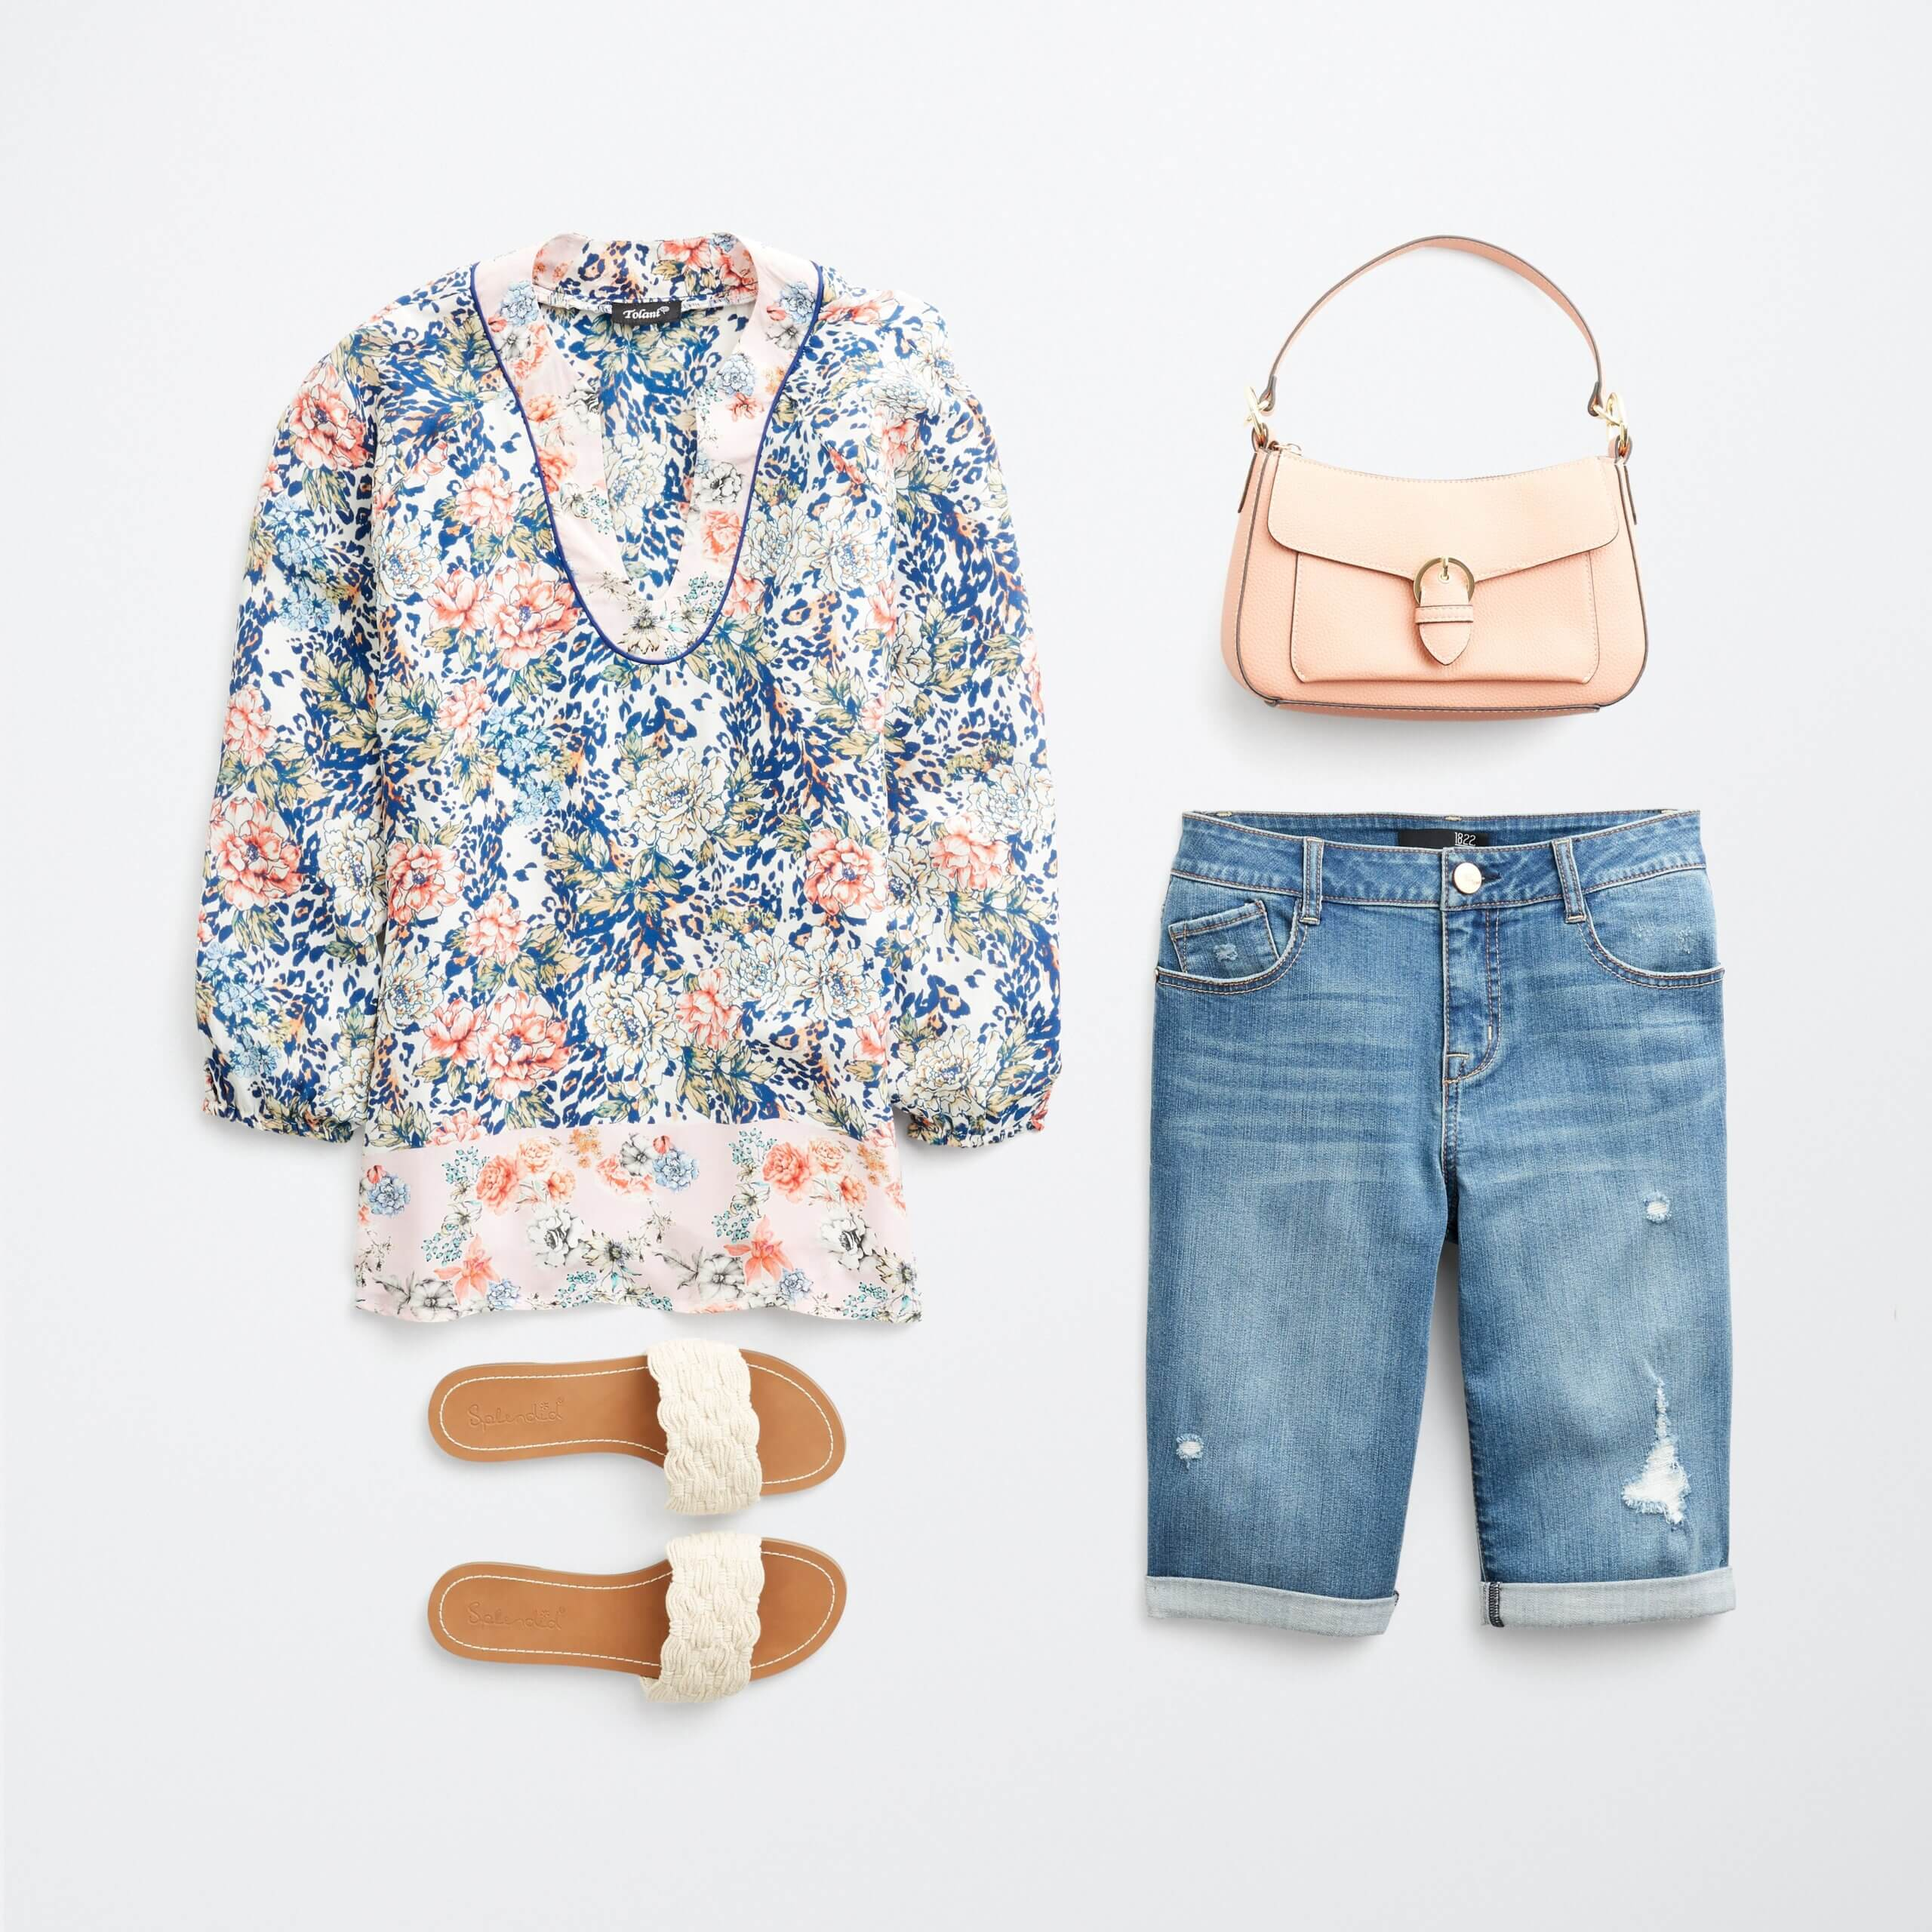 Stitch Fix Women's outfit laydown featuring blue, pink and cream printed blouse with blue denim bermuda shorts, pink purse and white slide sandals.